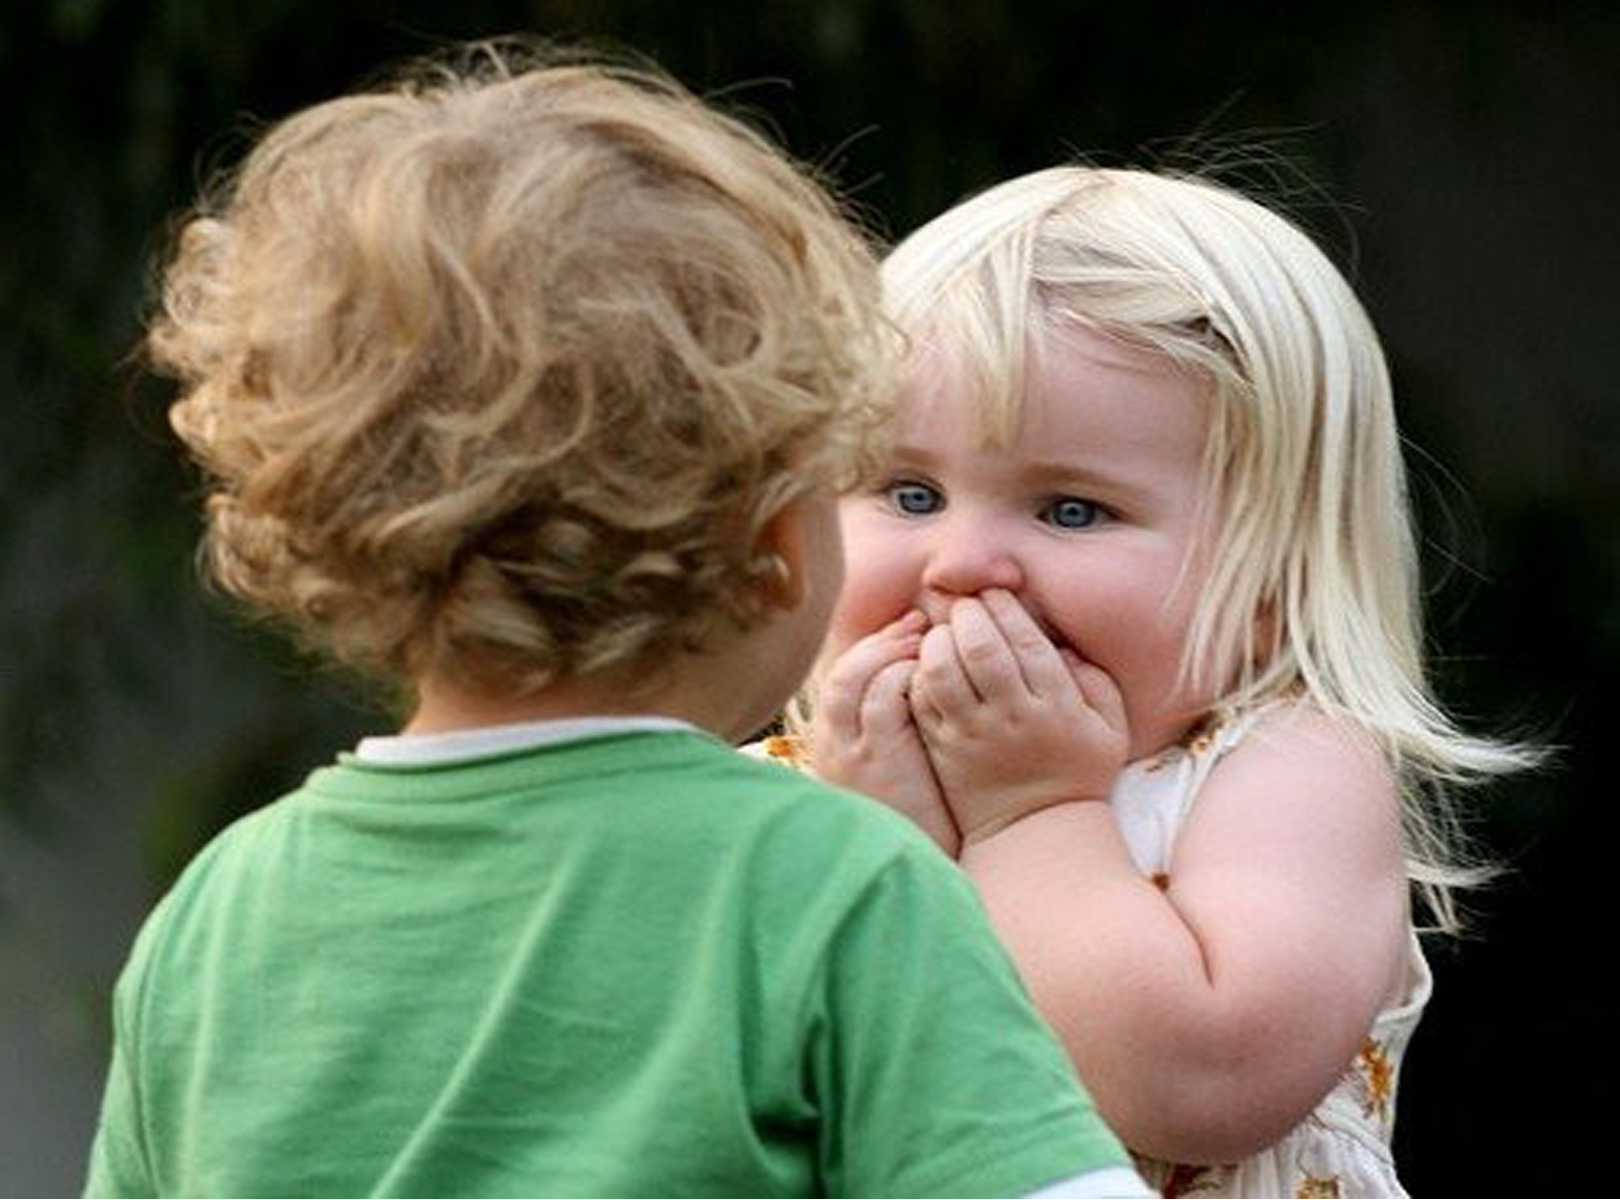 Baby Couple Wallpapers High Quality Profile - Love Romantic Love Couple Baby - HD Wallpaper